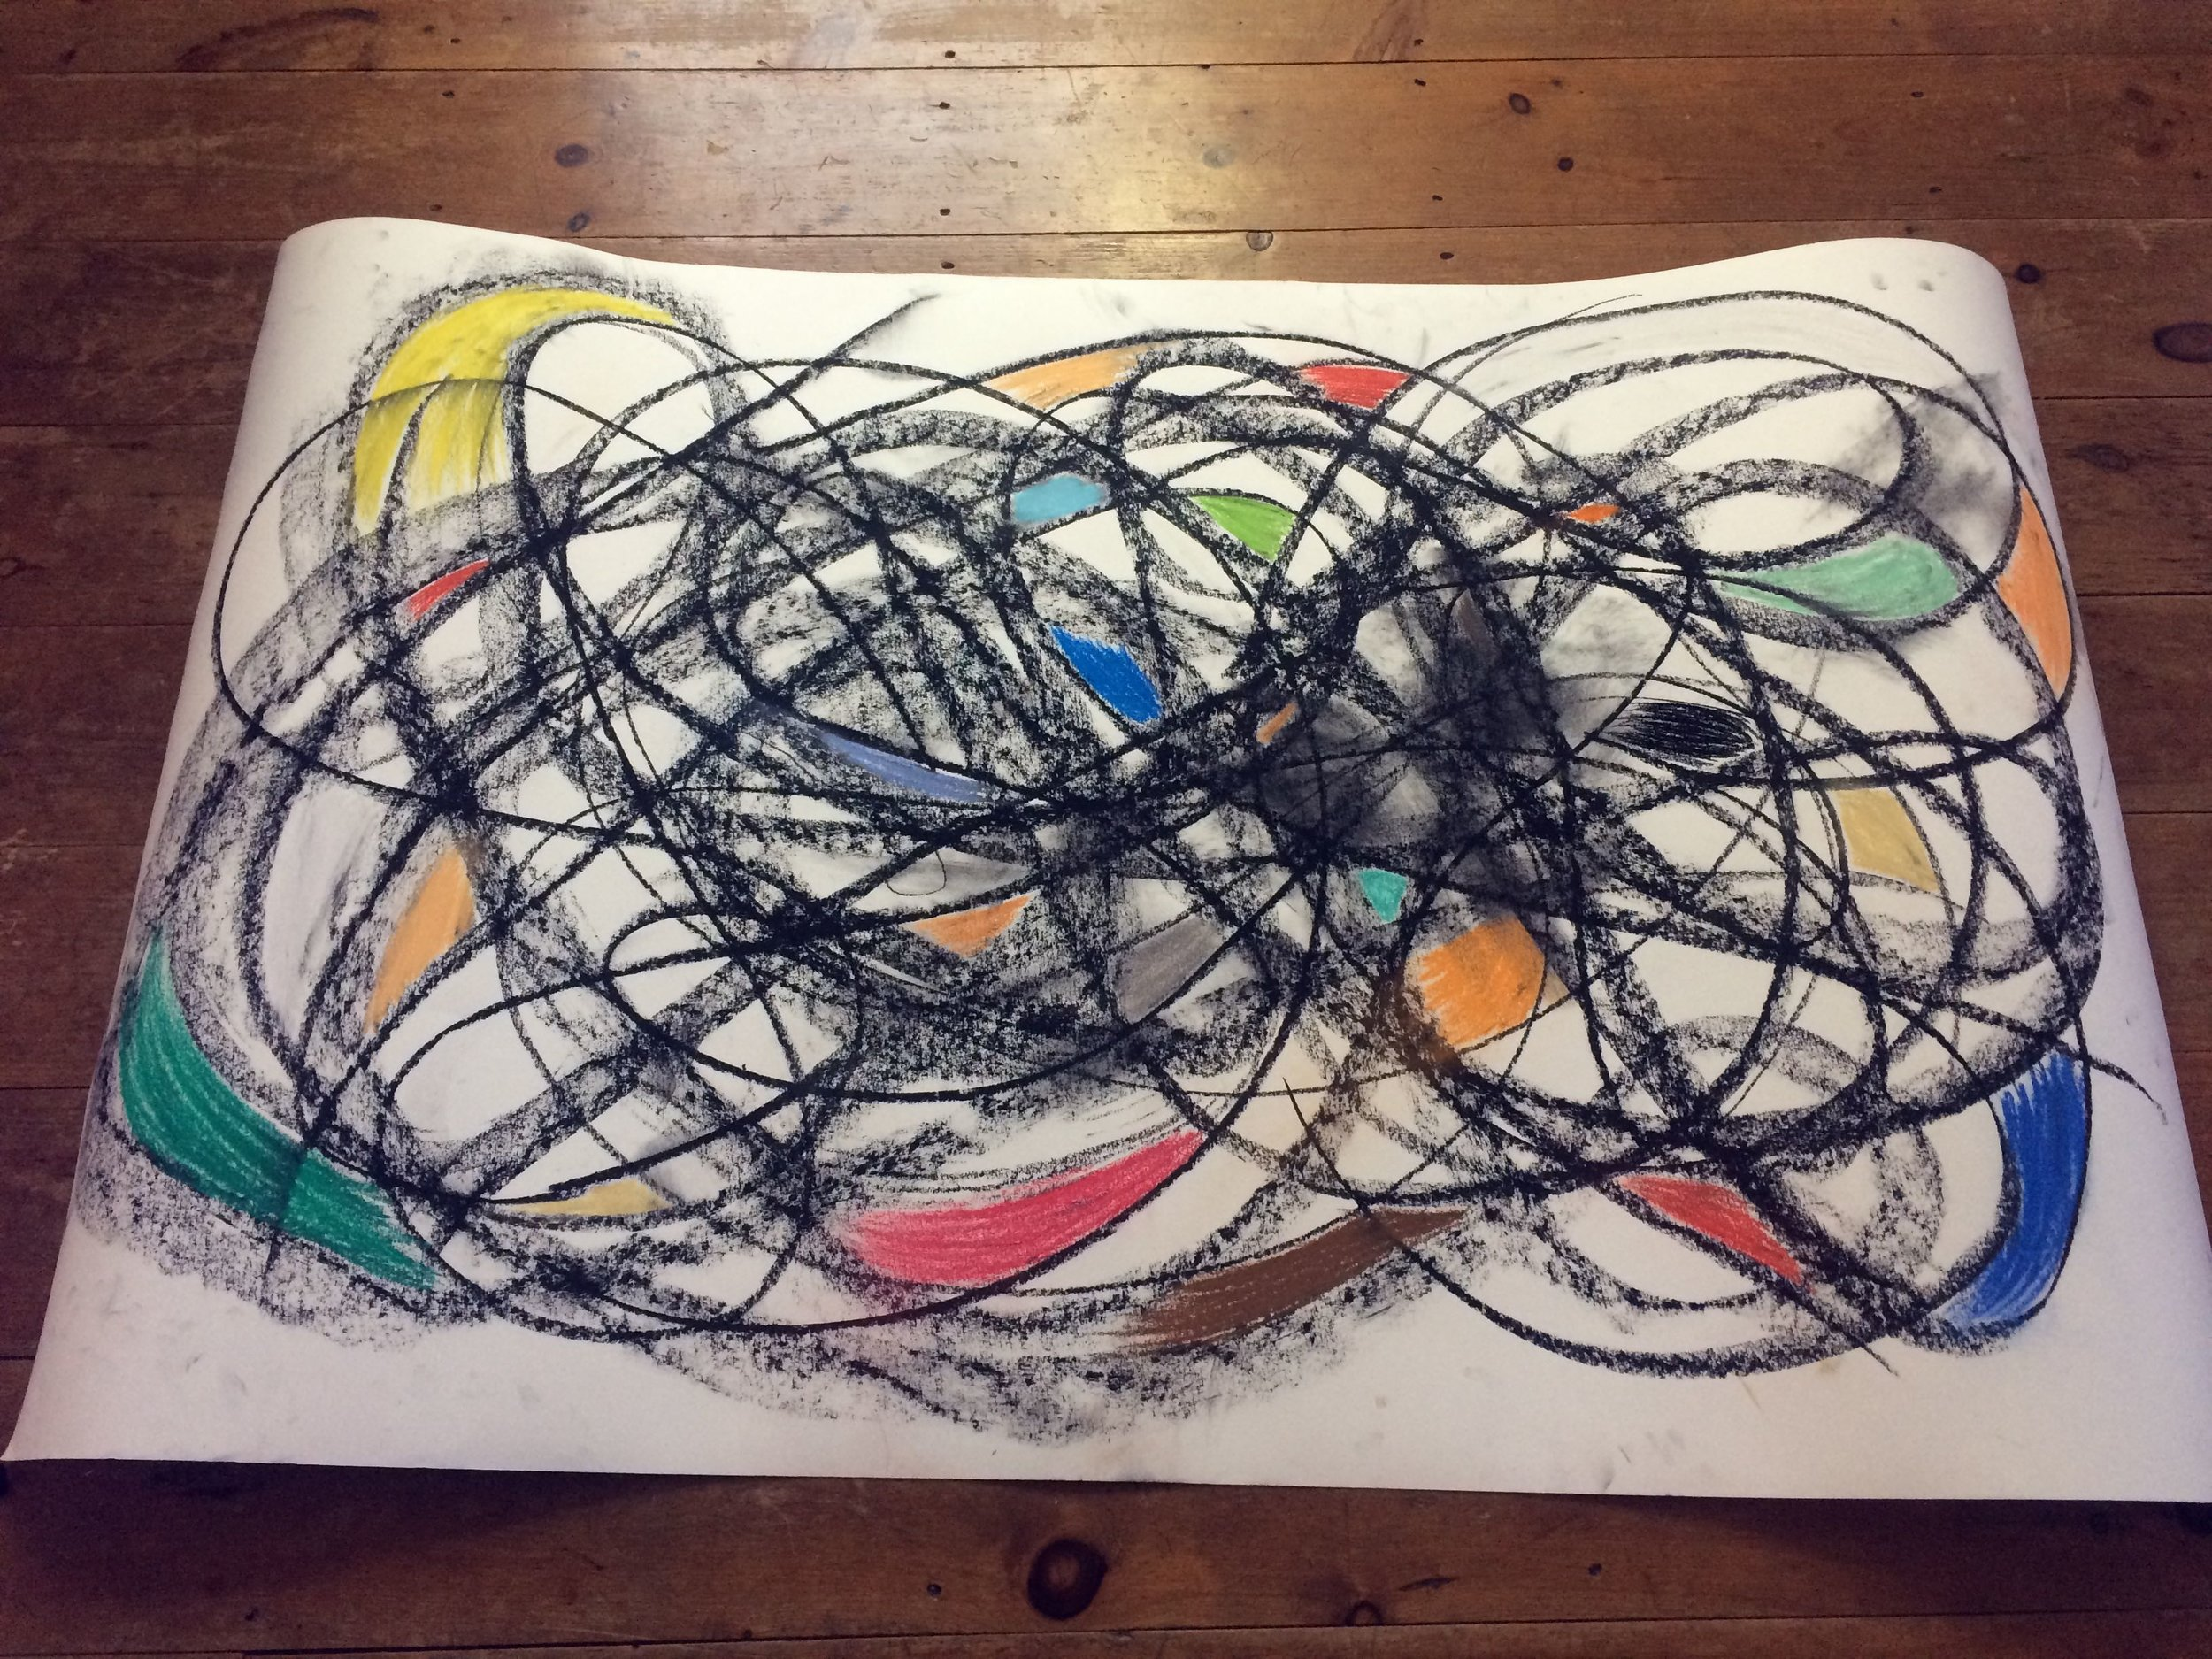 """E MERGE Interdisciplinary Collaborative Residency 2019.  E MERGE Presents...   """"Everything is MOVEMENT for me. I tune in to where energy wanna travel and what it wants to say""""   Charcoal chunk and soft pastel, 36"""" x 60"""" (92 cm x 152 cm) on 140lb Bee Watercolor paper.  Produced by Cory Neale & Earthdance."""